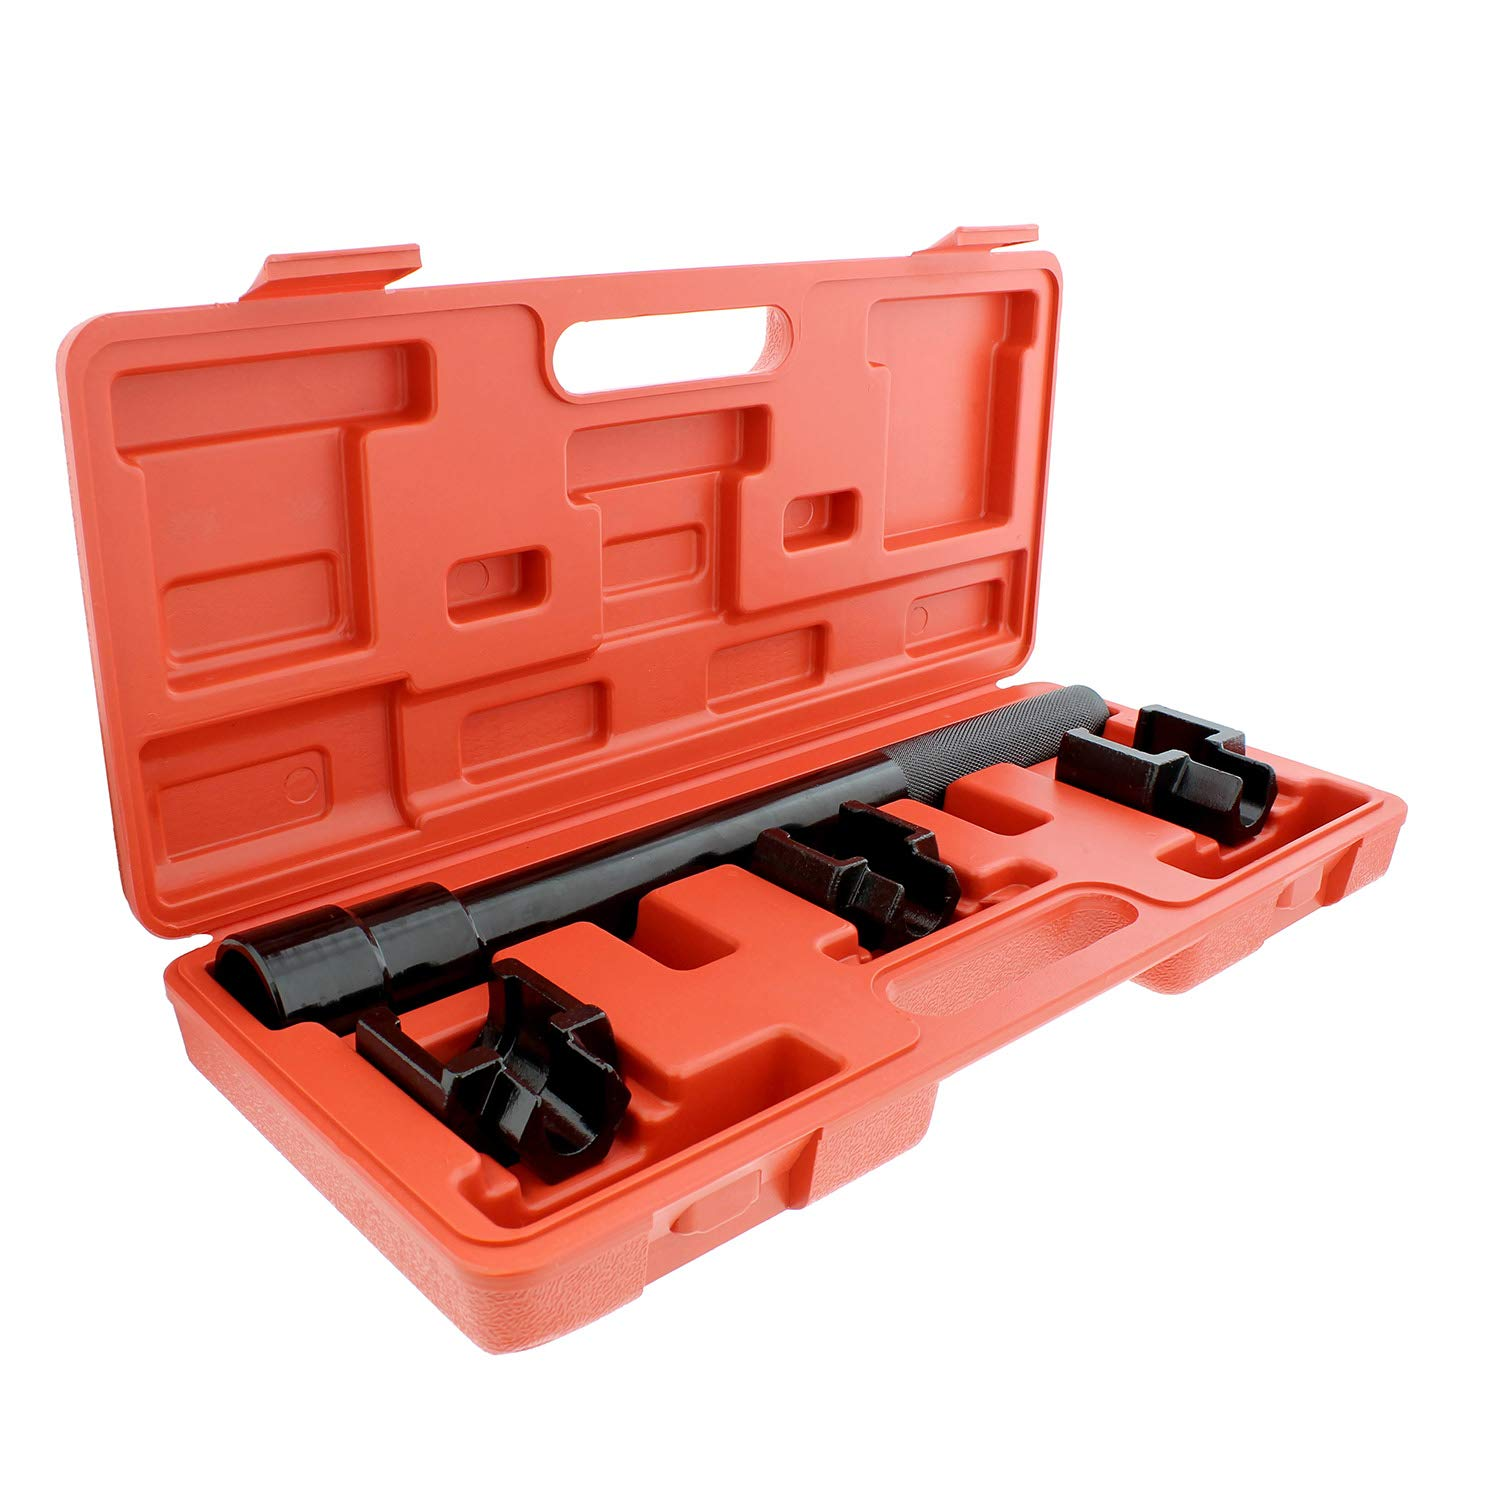 ABN 1/2 Inch Drive SAE Inner Tie Rod Removal Tool Kit - Inner Tie Rod Tool Set with Tie Rod Puller Tool and 3 Adapters